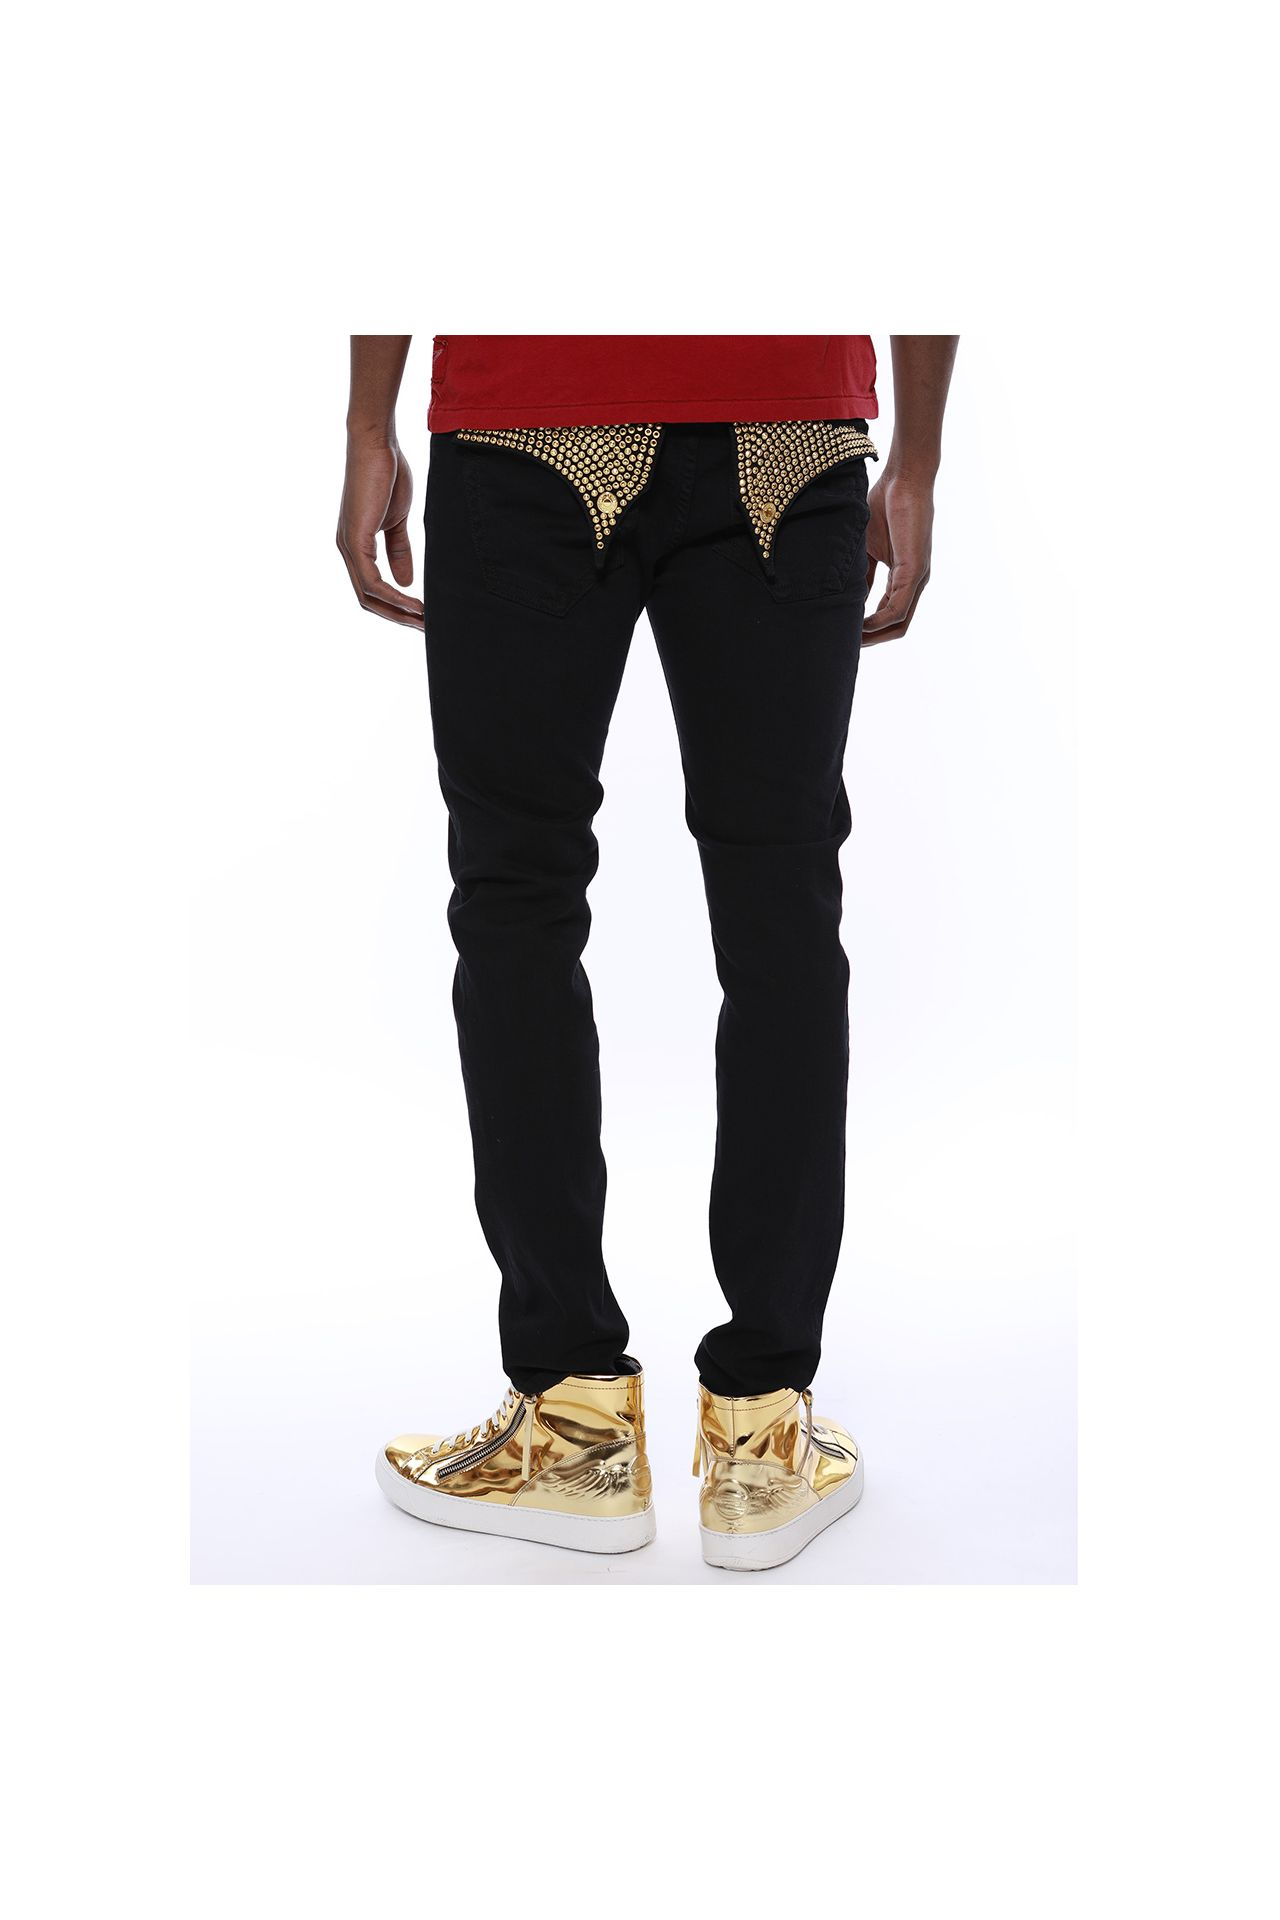 SKINNY JEANS IN PURE BLACK W/ GOLD STUDS